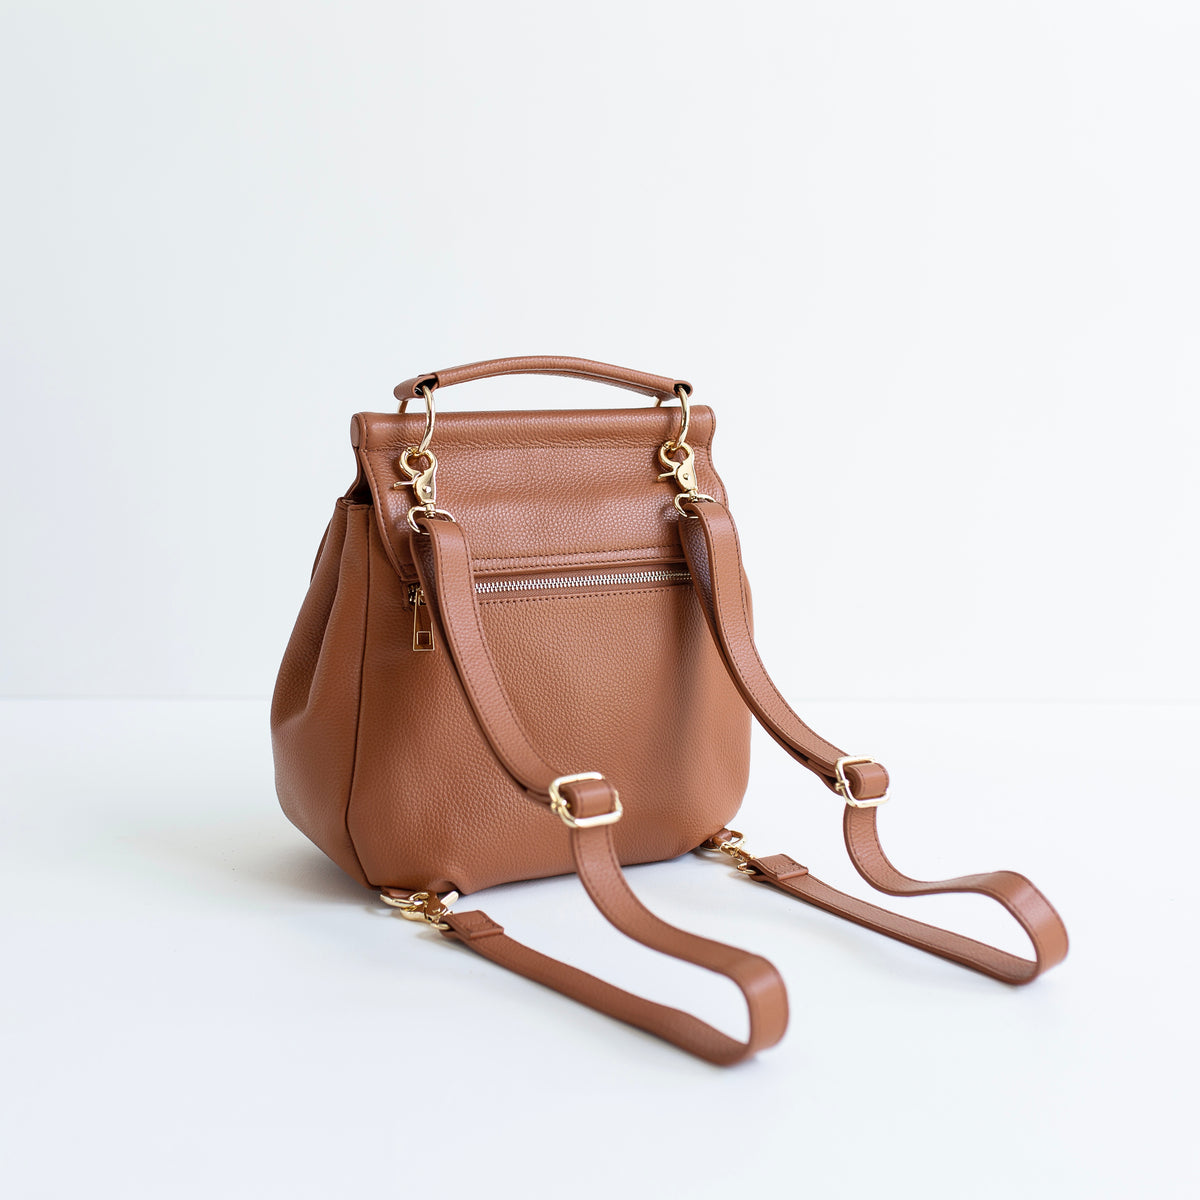 The Muriel - 4 Way Backpack: All Tan